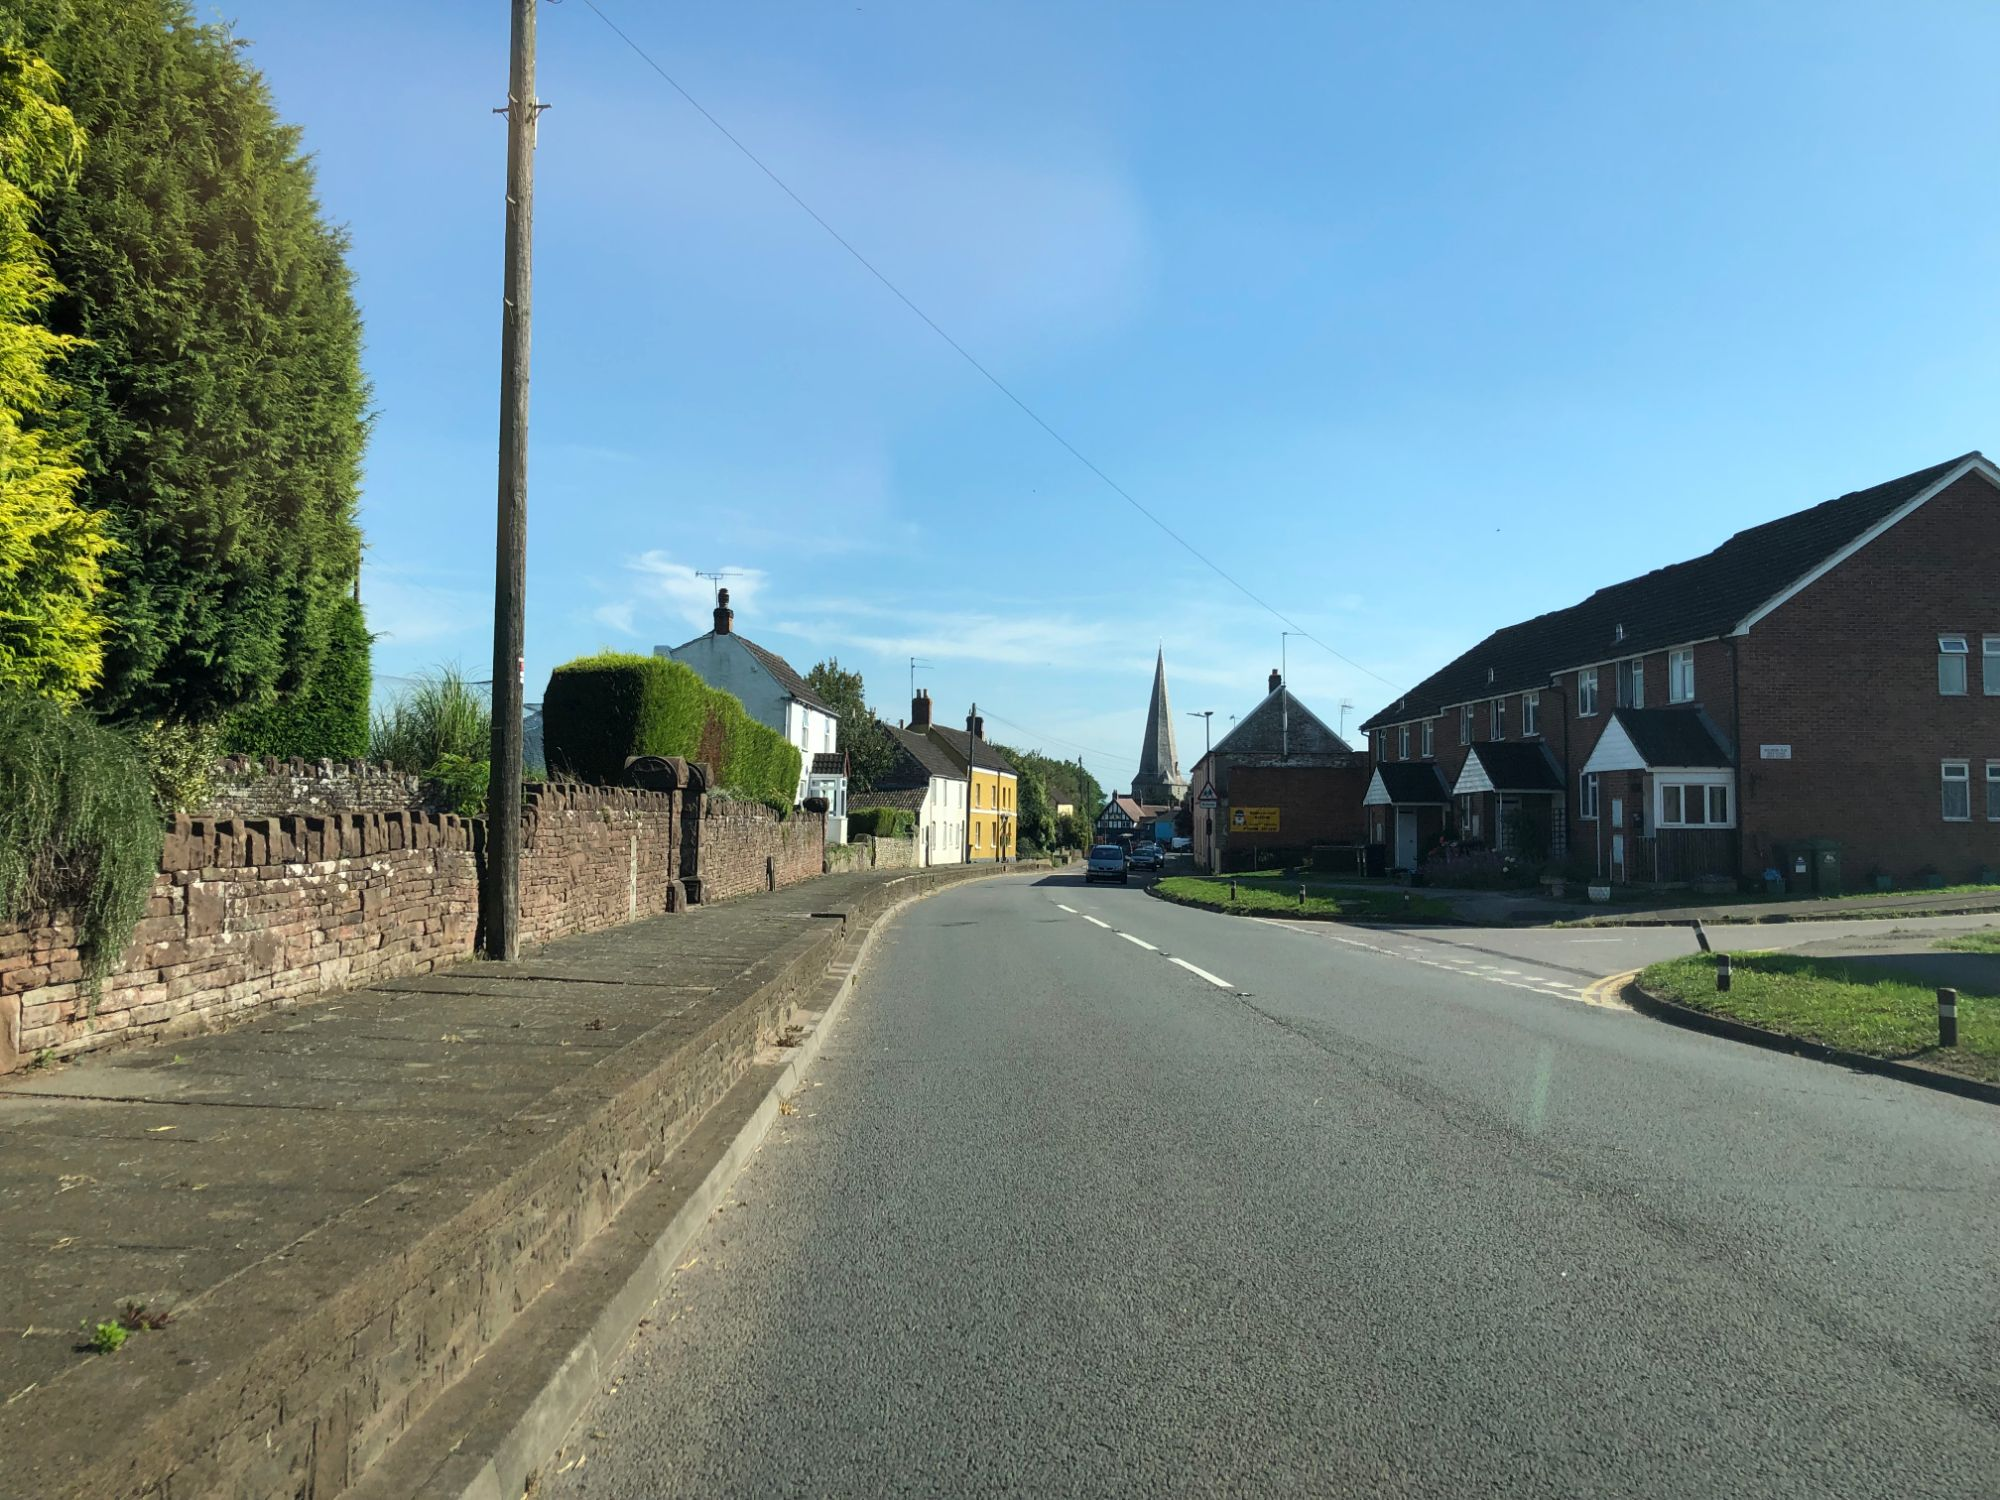 free stock image photo uk road village town blue sky